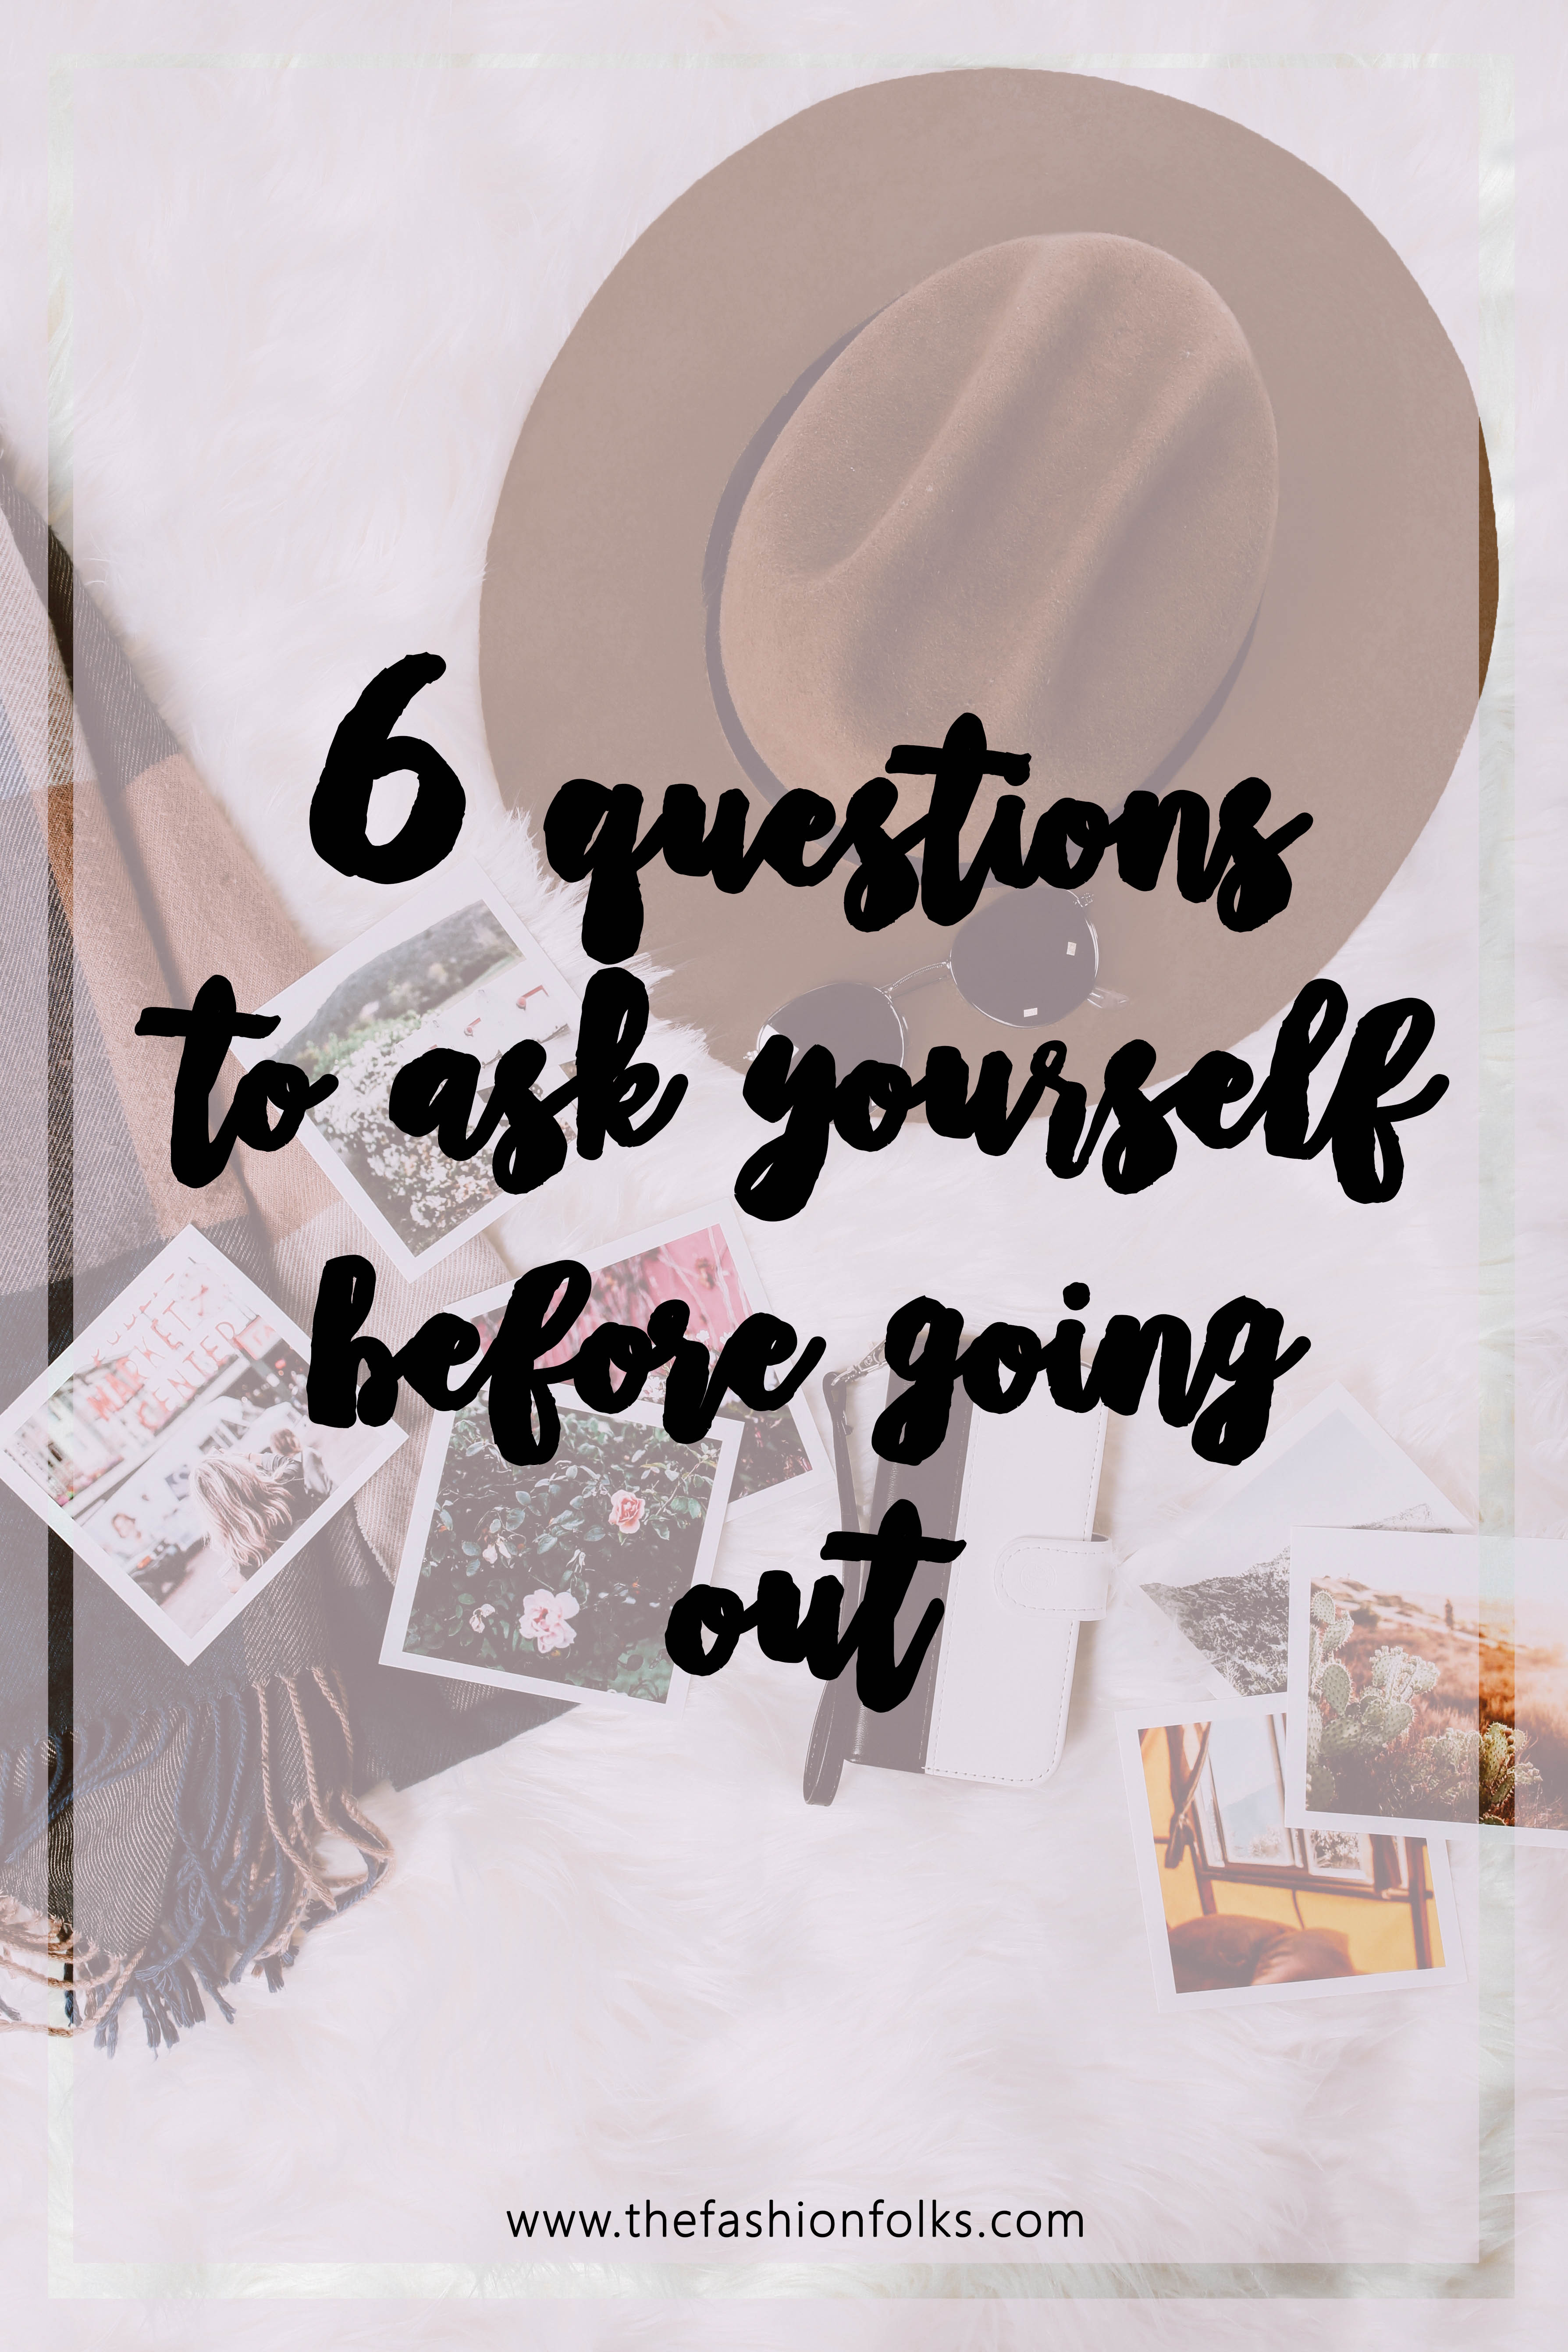 Questions To Ask Yourself Before Going Out, Styling Tips, Outfit Tips, Outfit Ideas, Street Style Tips | The Fashion Folks